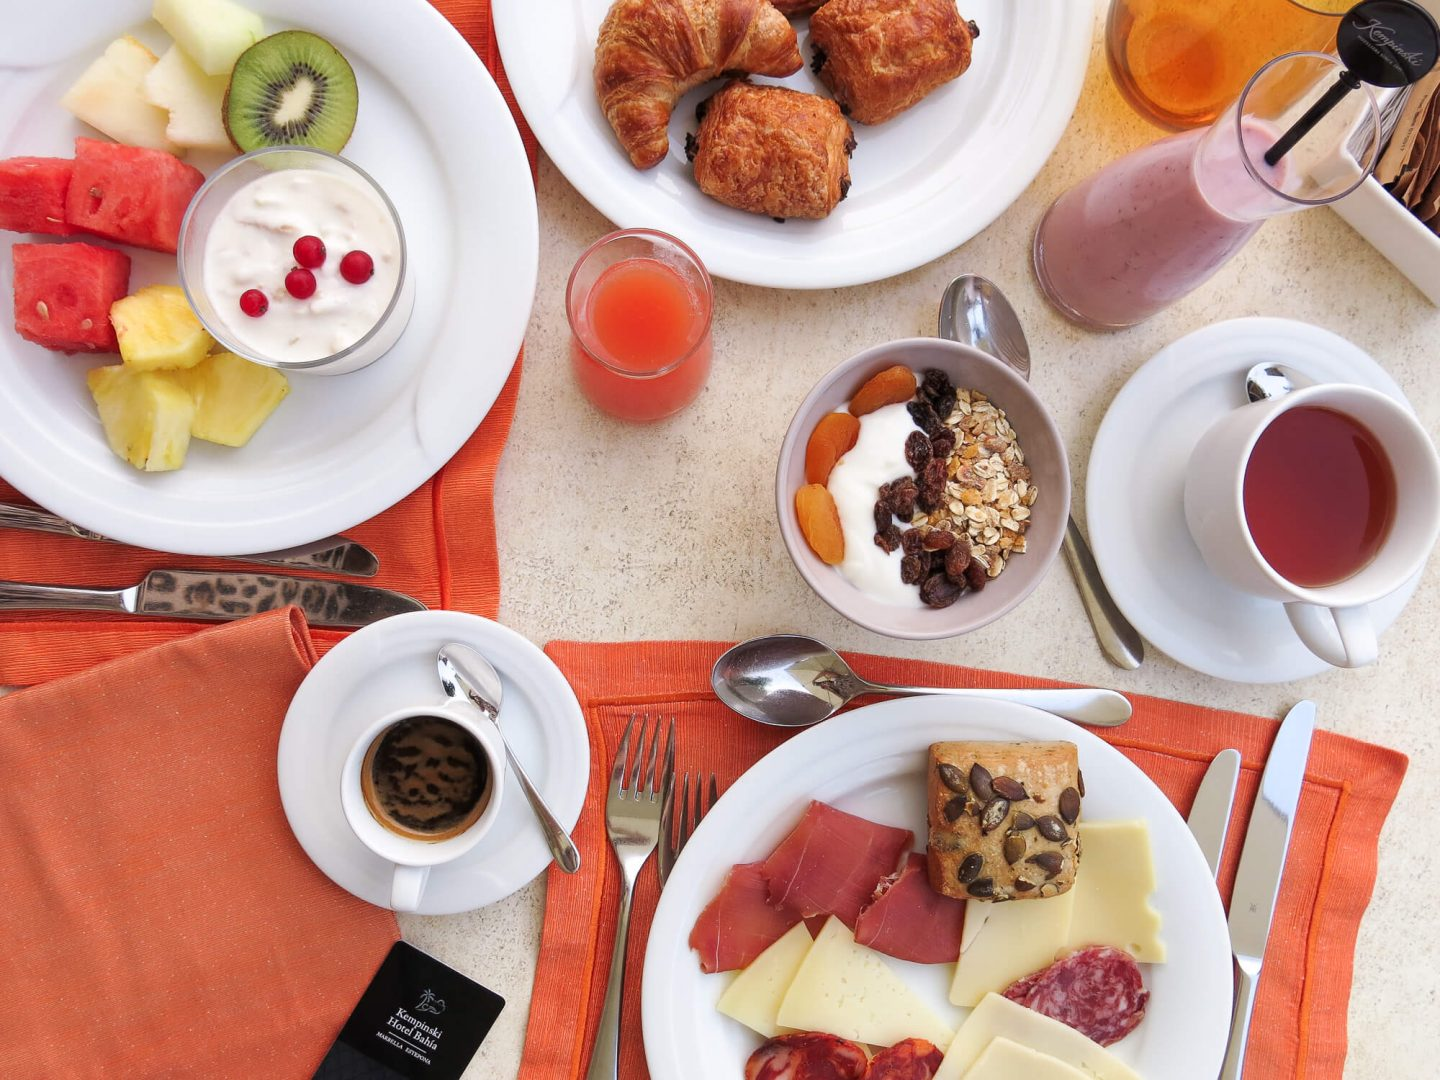 An incredible hotel breakfast at Kempinski Hotel Bahía, Spain